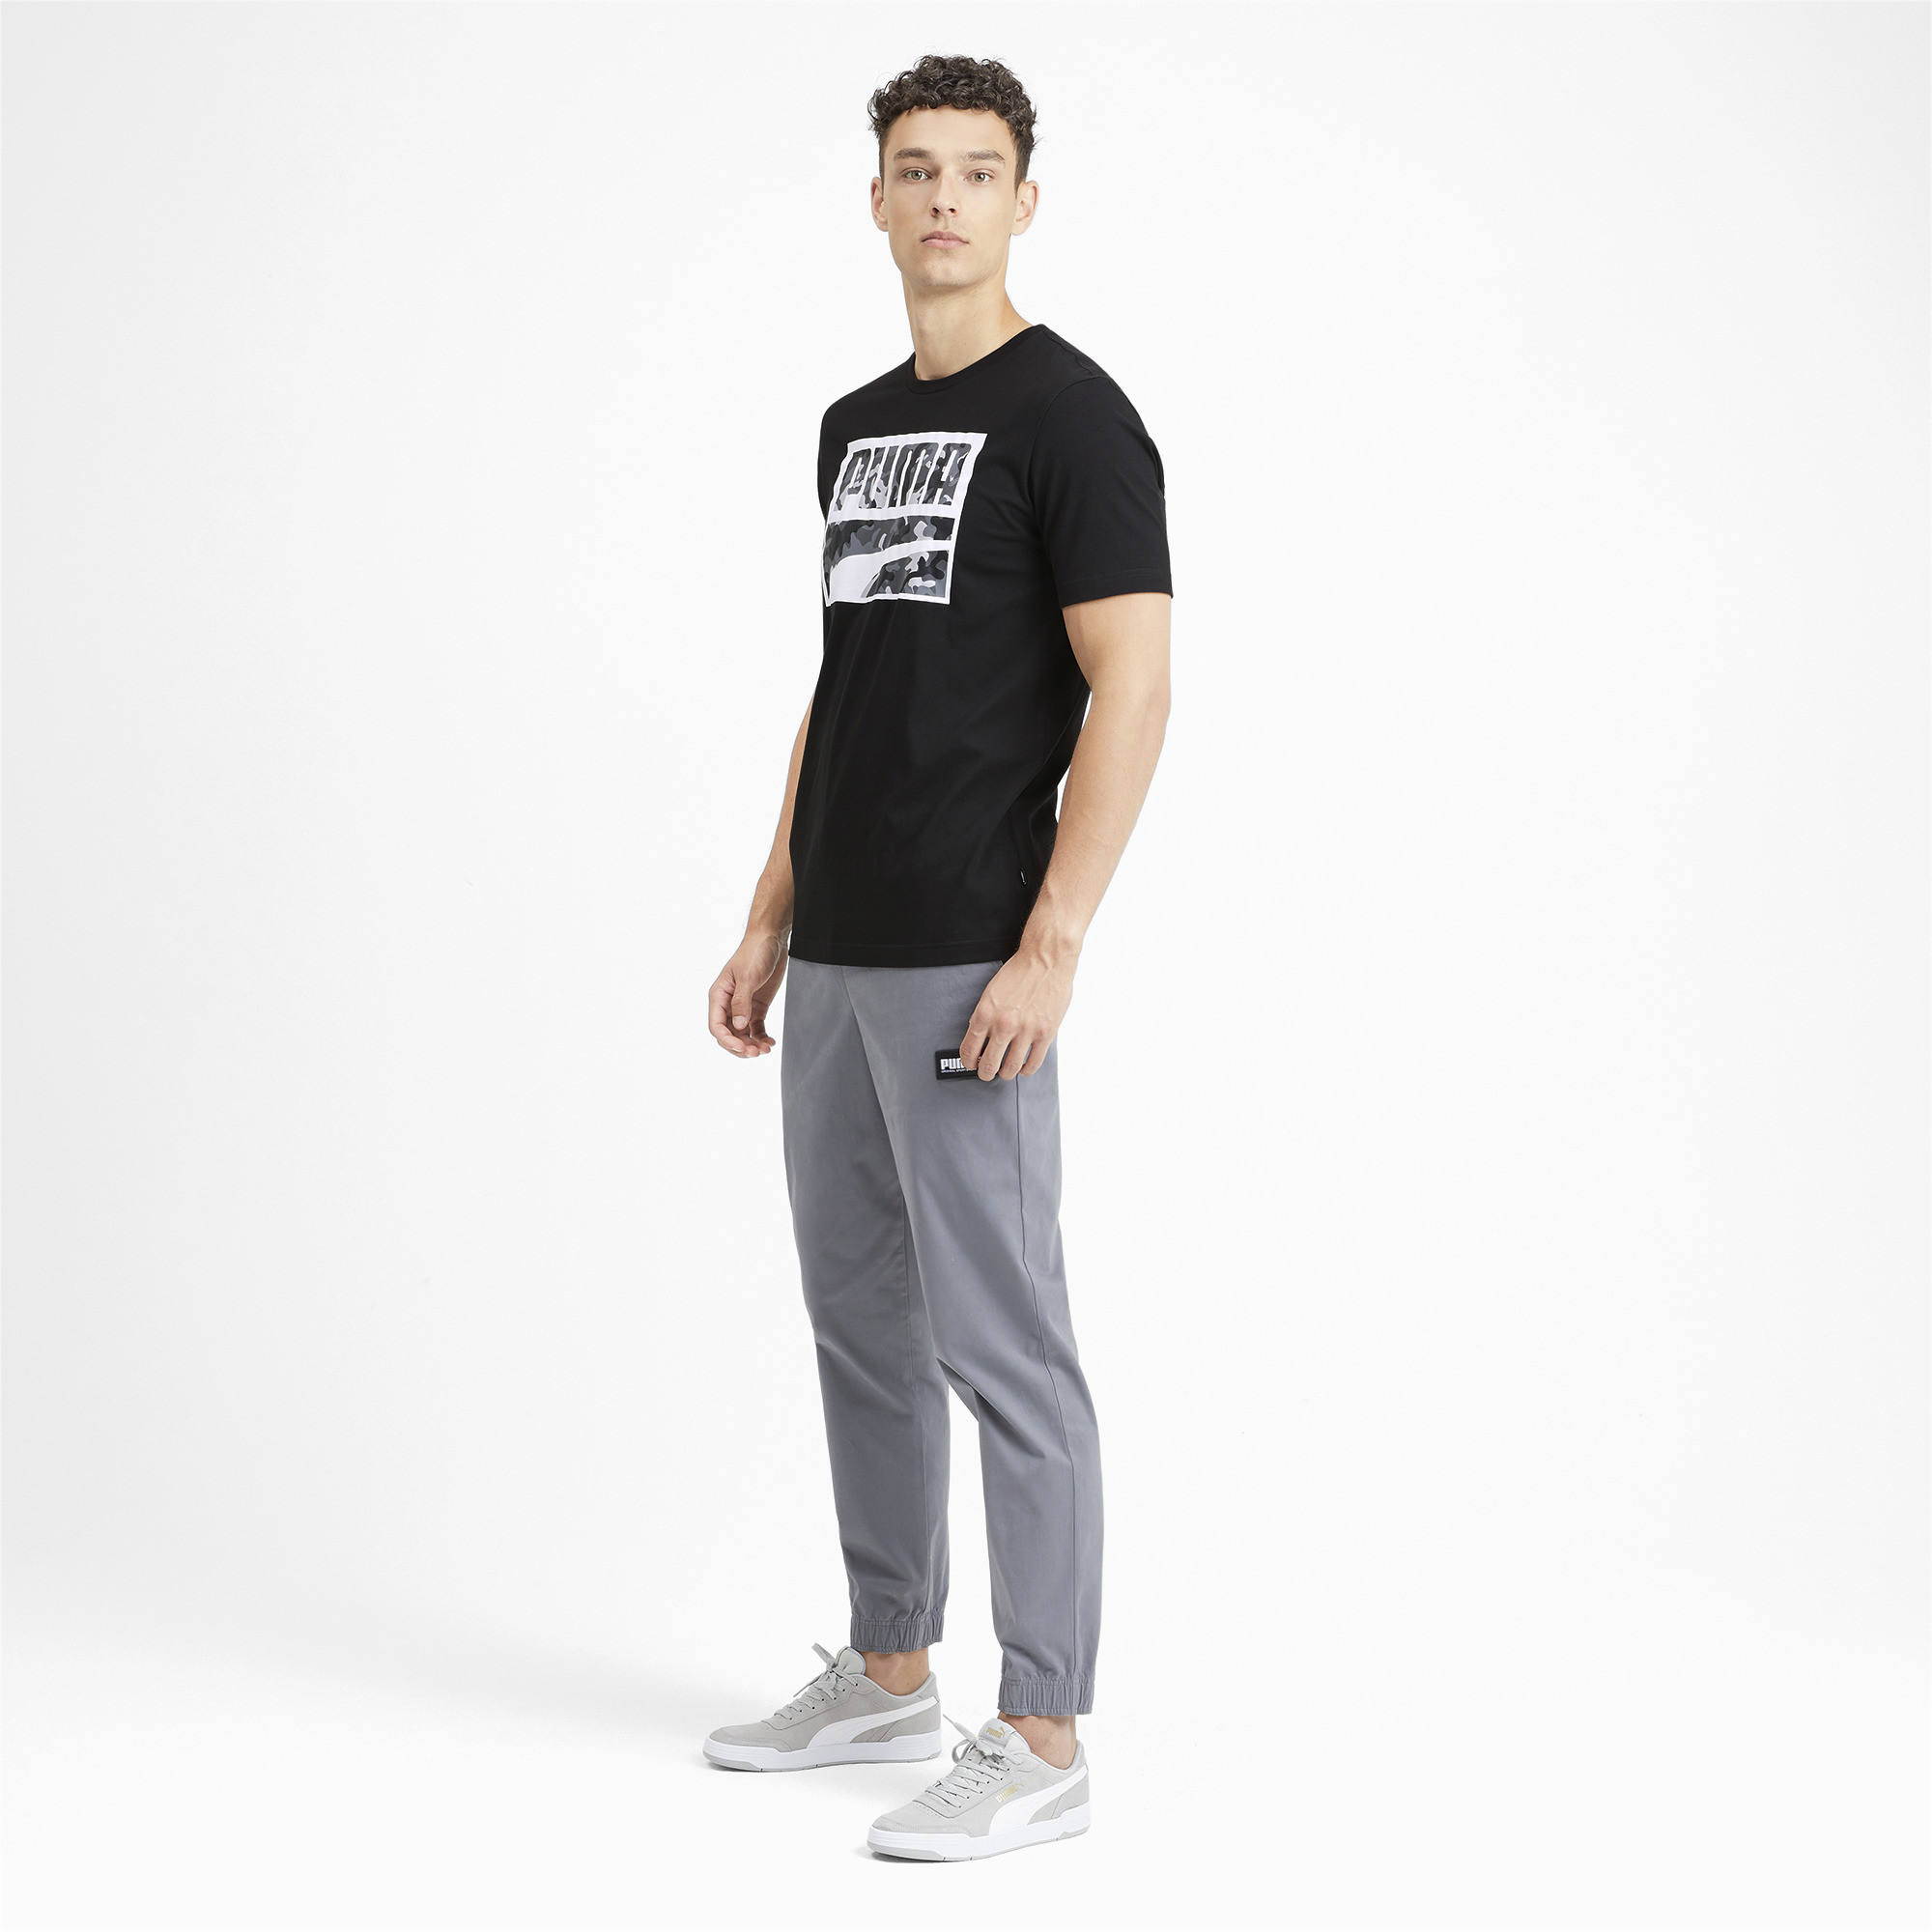 PUMA-Rebel-Camo-Filled-Men-039-s-Tee-Men-Tee-Basics thumbnail 6